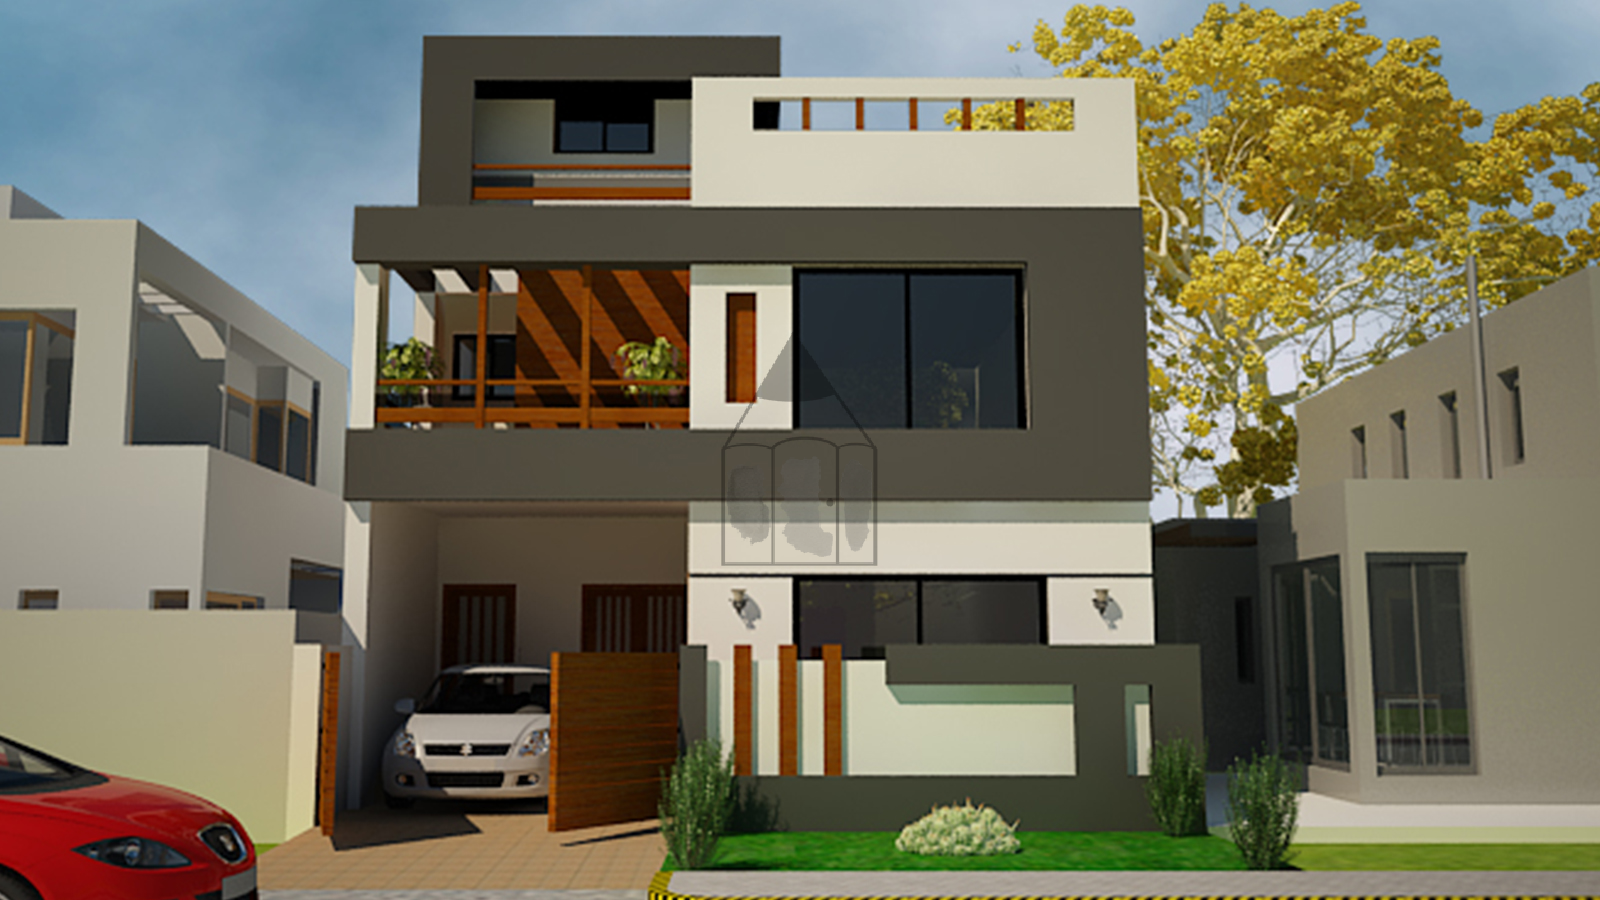 5 marla house front design ashfaq 5 marla house plan 3d